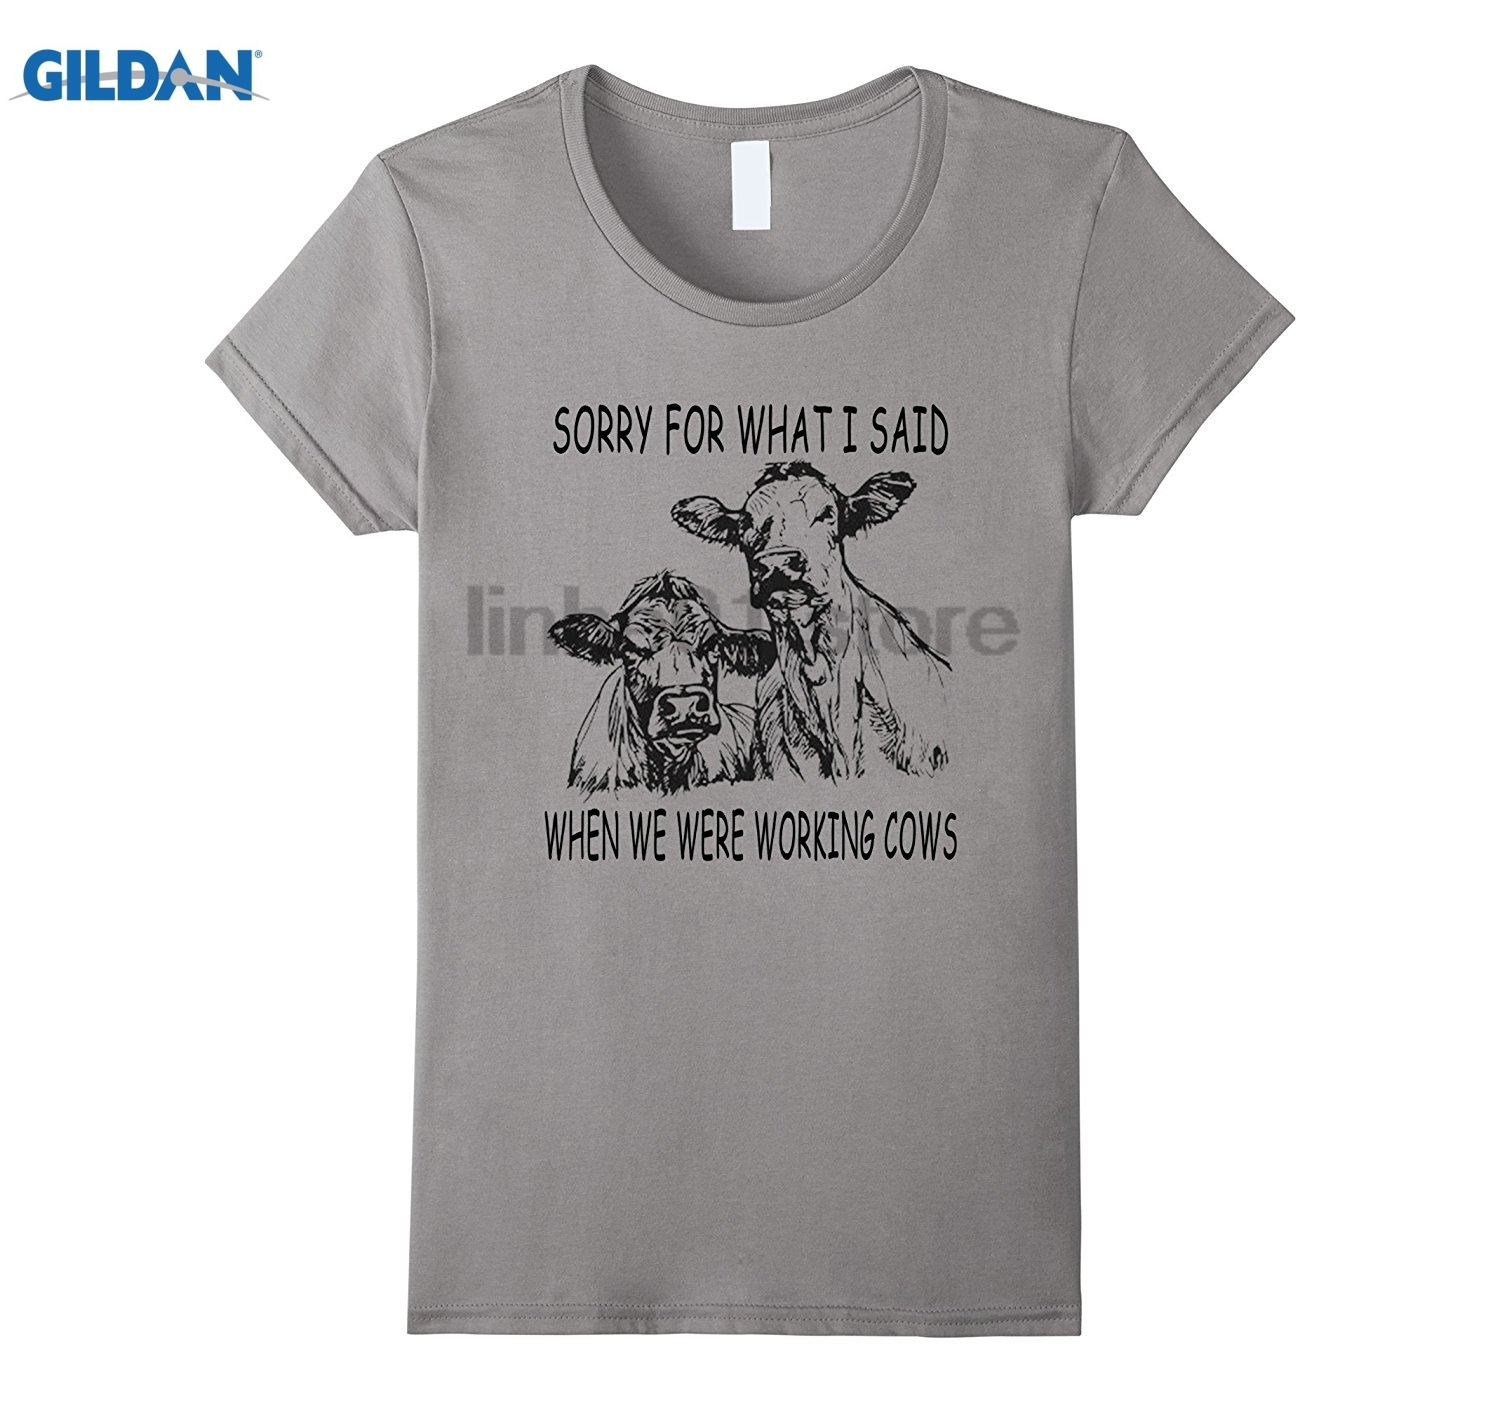 GILDAN Sorry For What I Said When We Were Working Cows Shirt Mothers Day Ms. T-shirt